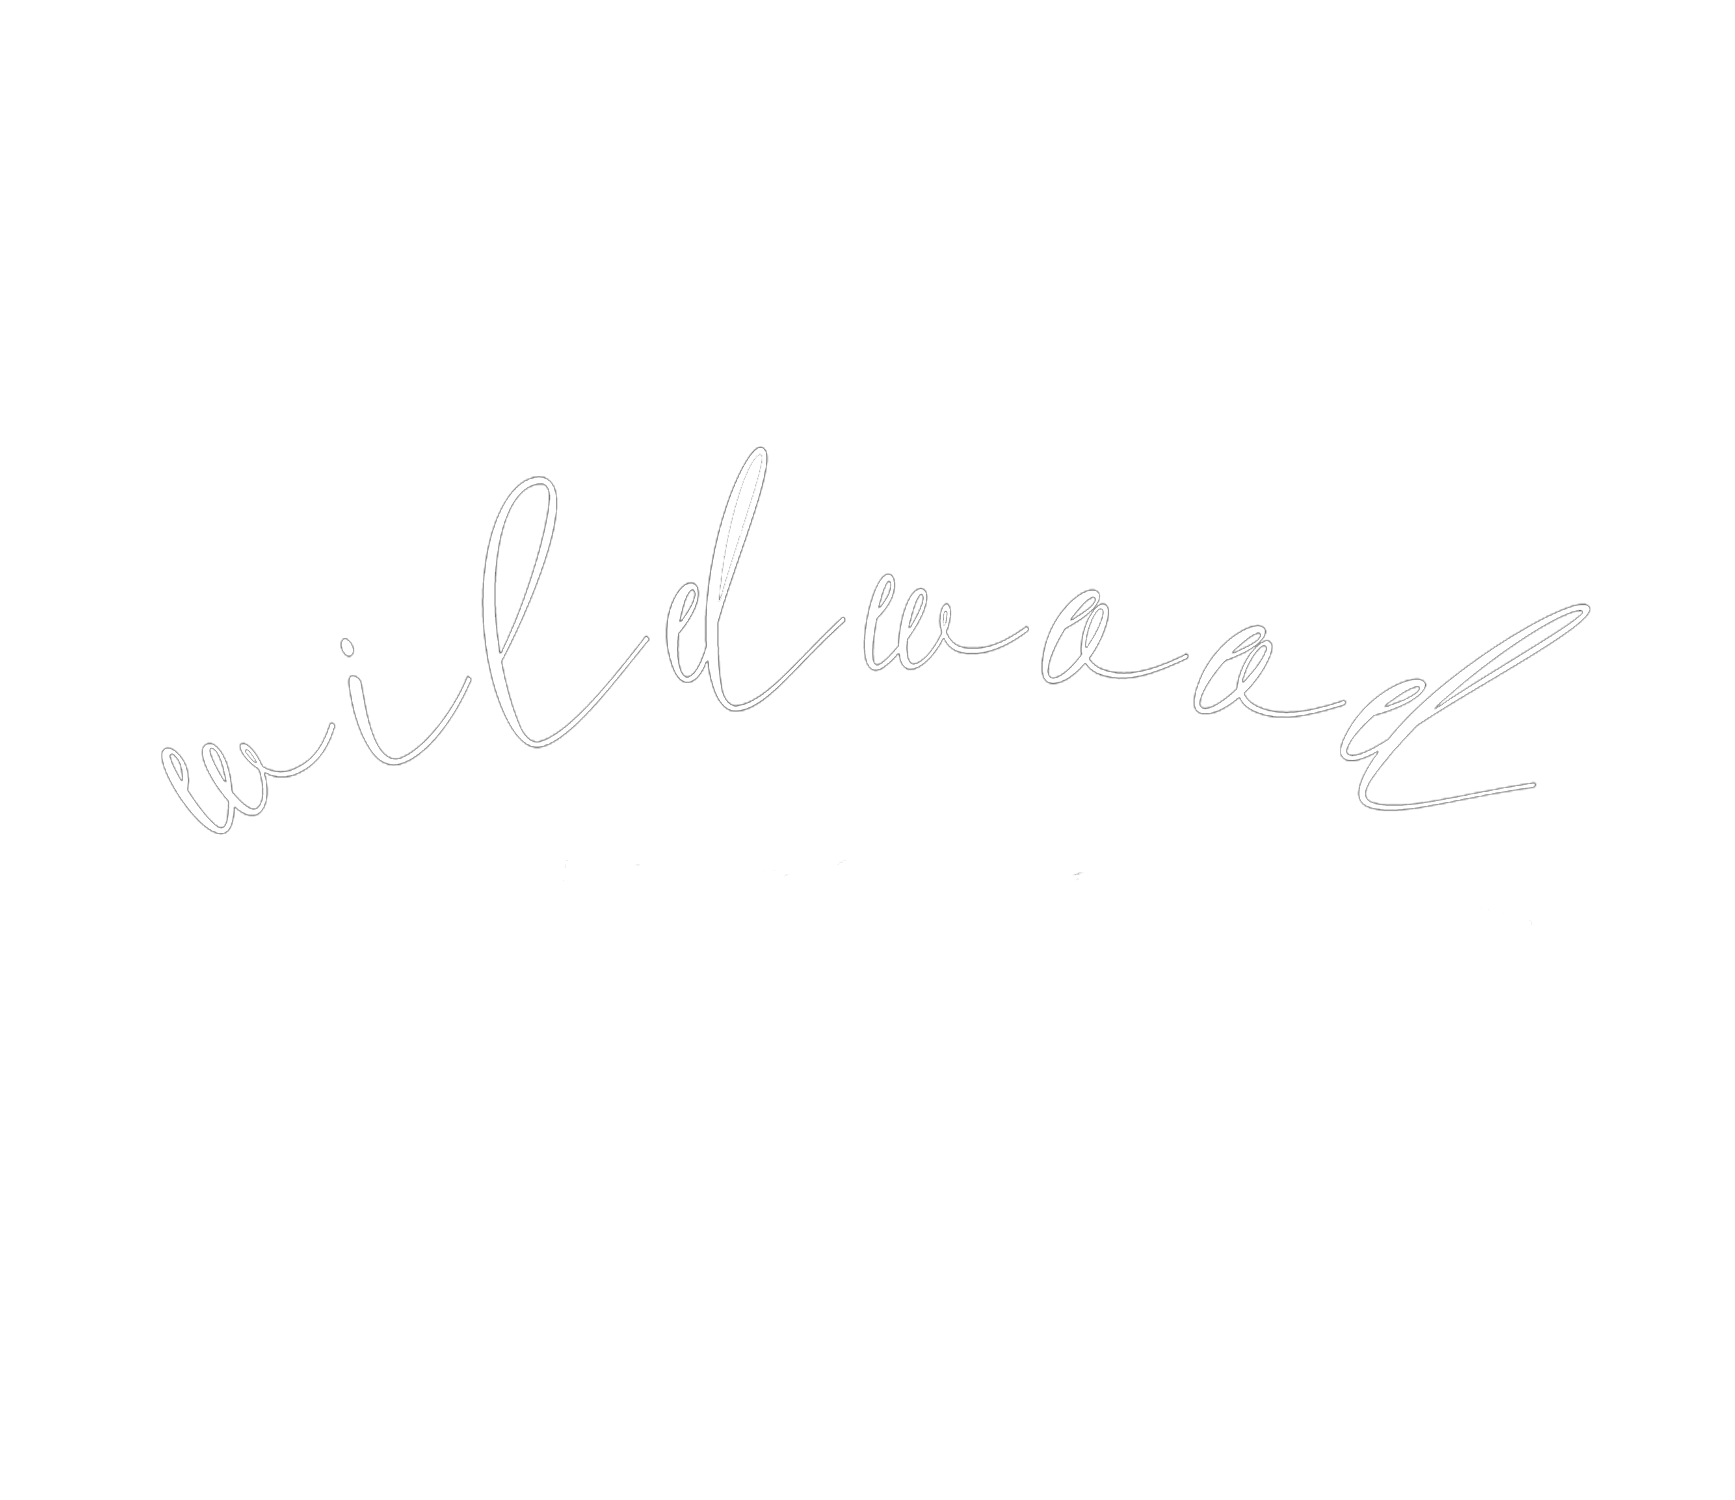 Wildwood Media Company